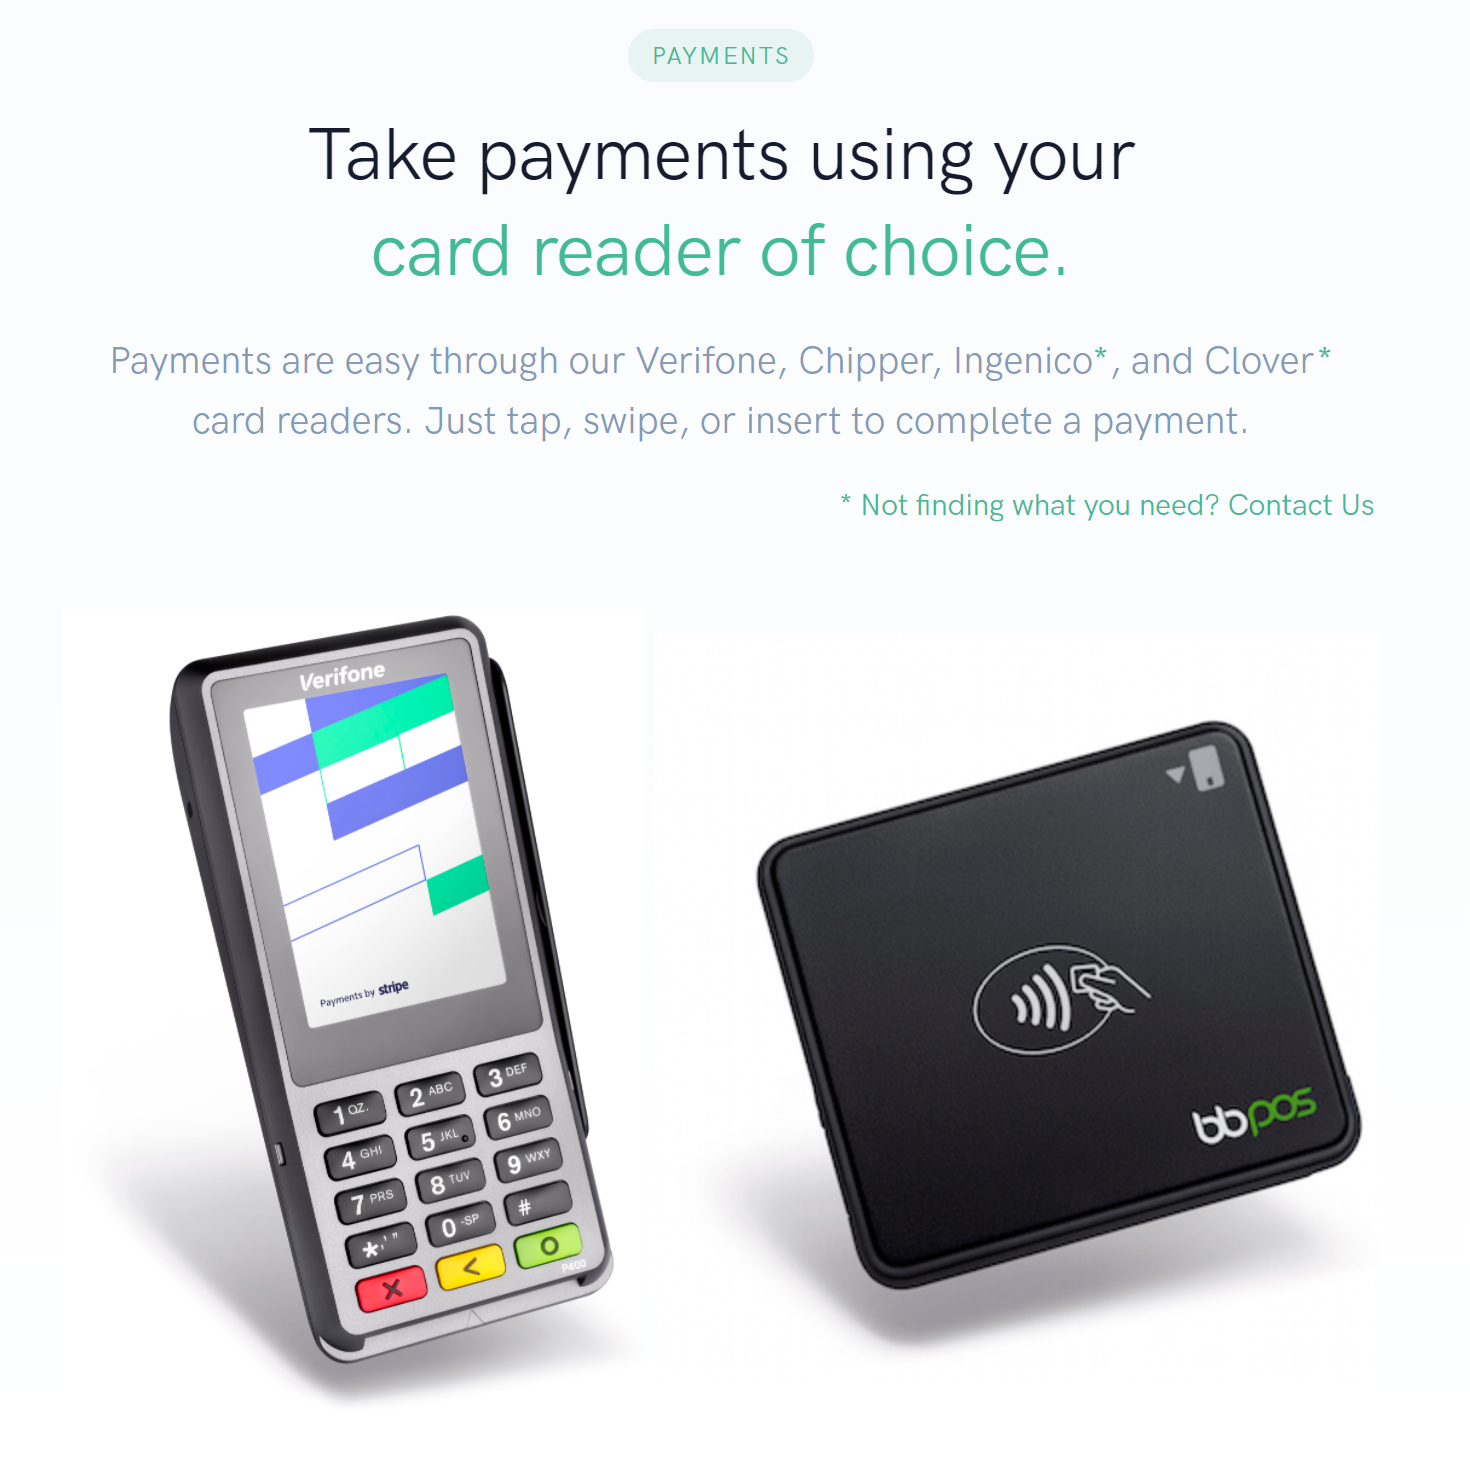 Restaurant Point of Sale Take payments using your card reader of choice Payments are easy through our Verifone, Chipper, Ingenico*, and Clover* card readers. Just tap, swipe, or insert to complete a payment